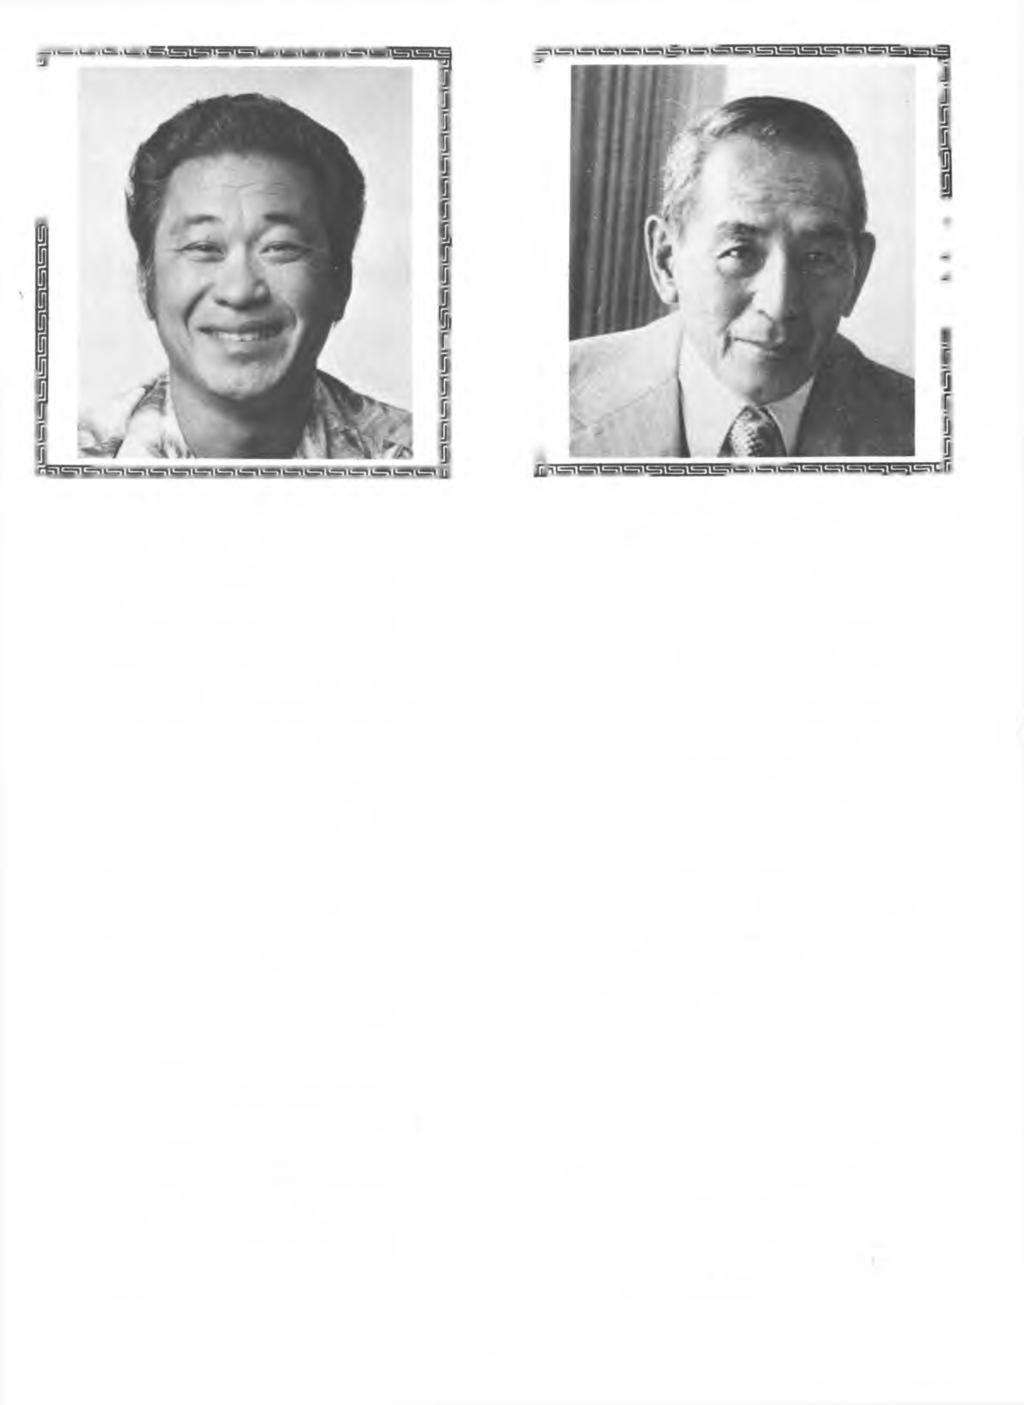 RICHARD K. WATANABE Richard K iichiro W atanabe is ow ner of W atanabe & Sons masonry contractor. M r. W atanabe was born July 10, 1 9 3 2 in H o nolulu, the son o f John T.